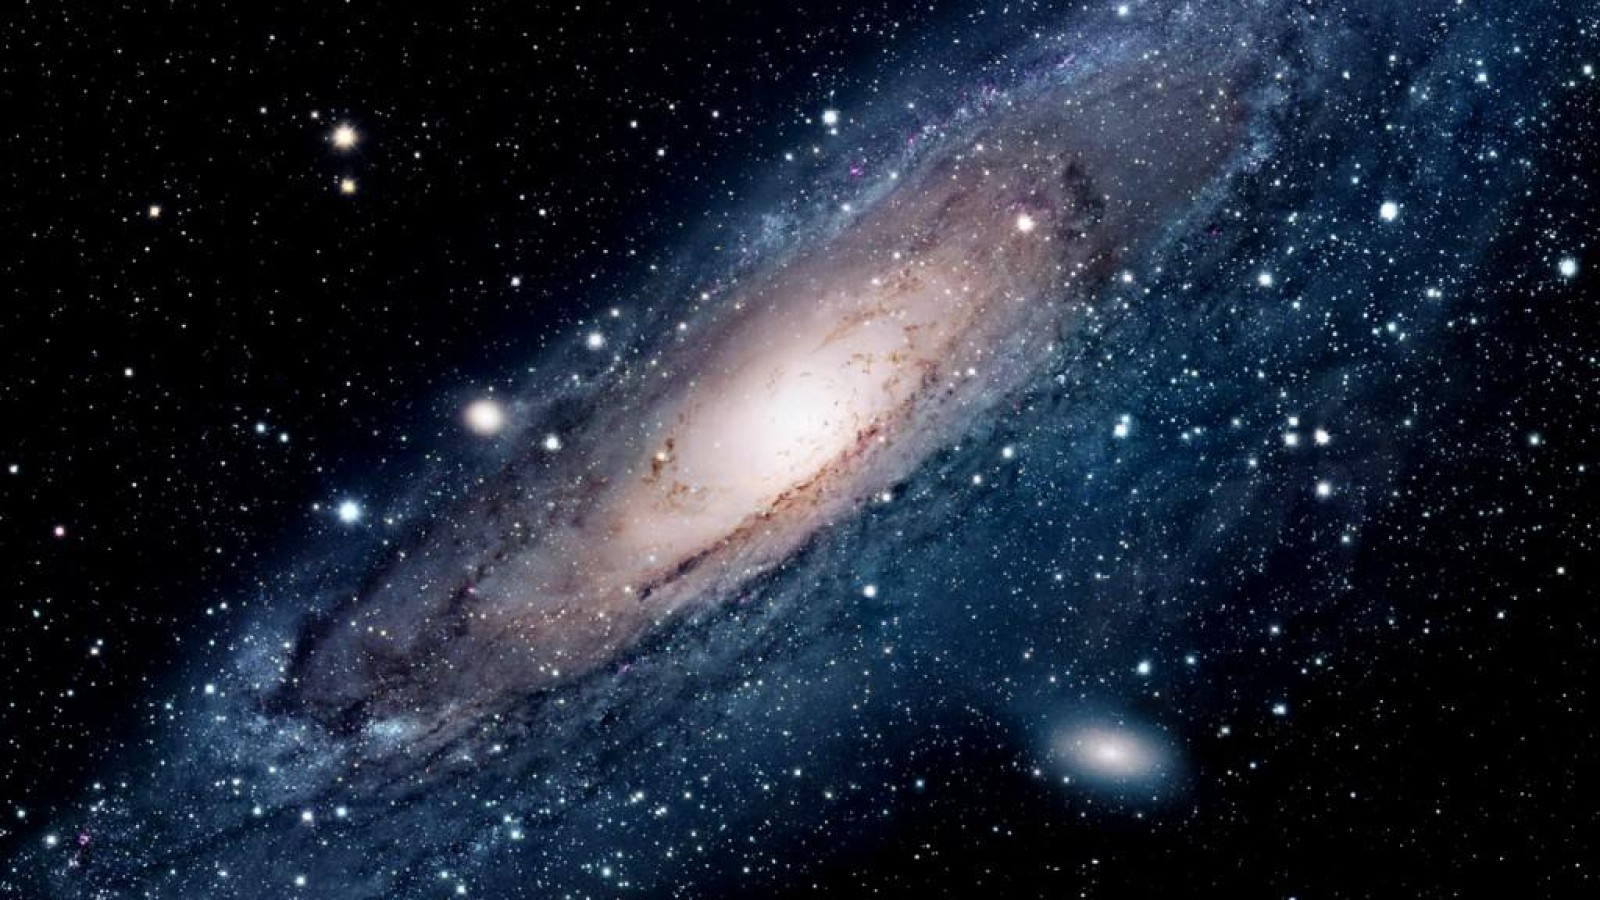 andromeda-galaxy-wallpaper